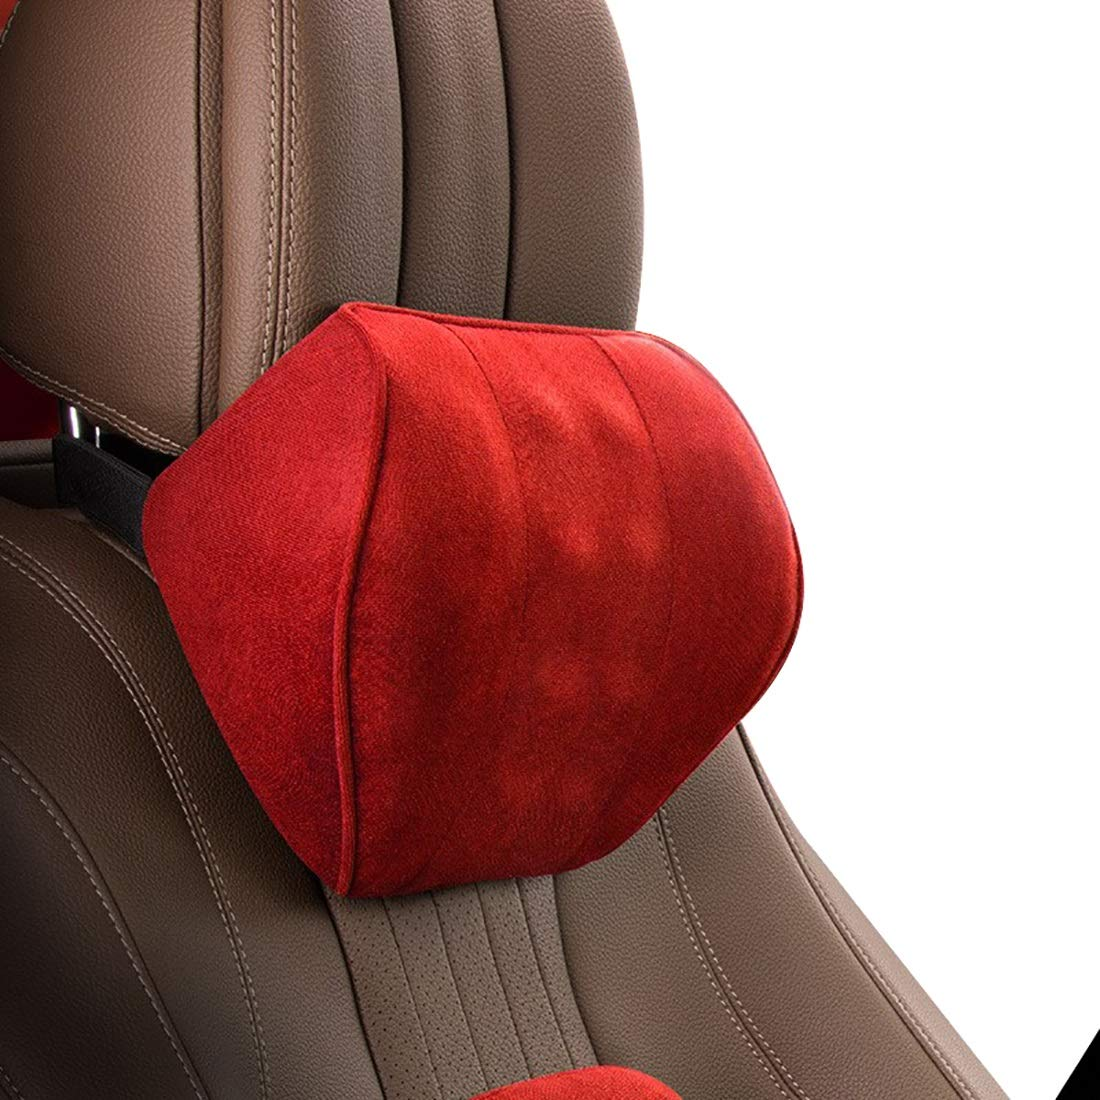 Casa perfecta Perfect House Seat Neck Pillow, car seat Ergonomic Cervical Spine Support Pillow, Long-Lasting Deformation, Breathable Memory Cotton. (Color : Red) by Casa perfecta